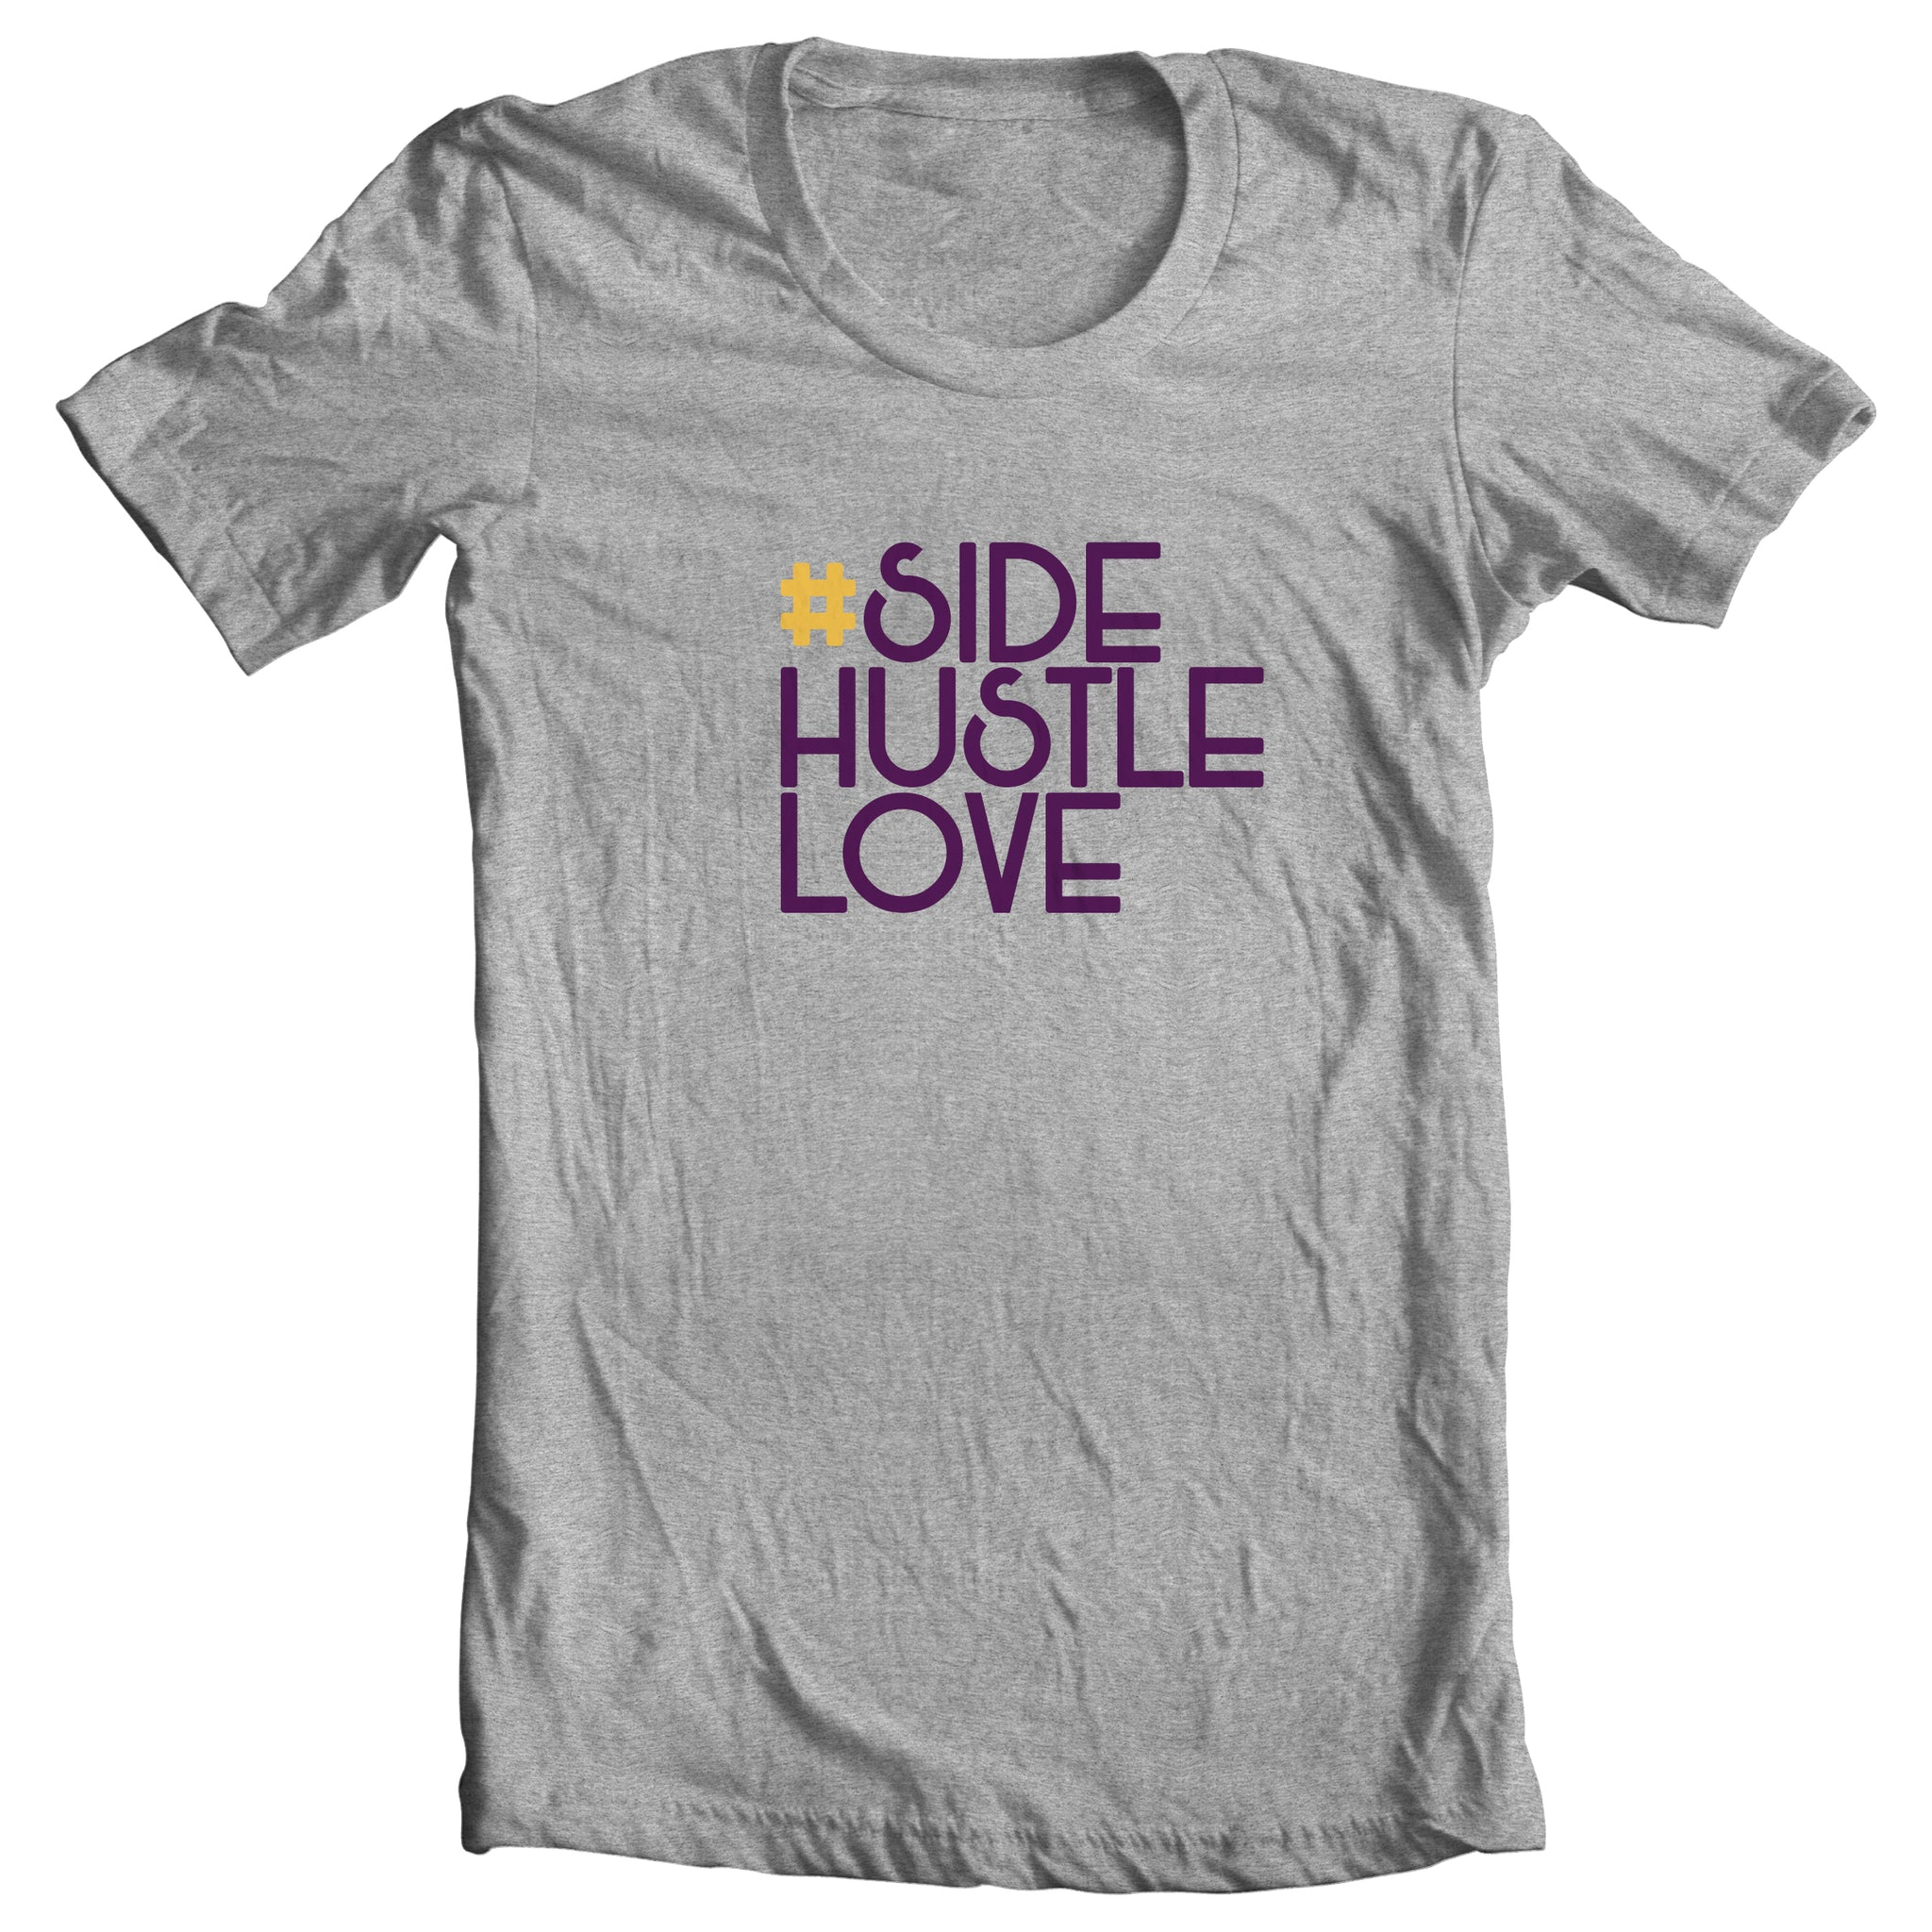 #sidehustlelove Graphic Tee from #SHL